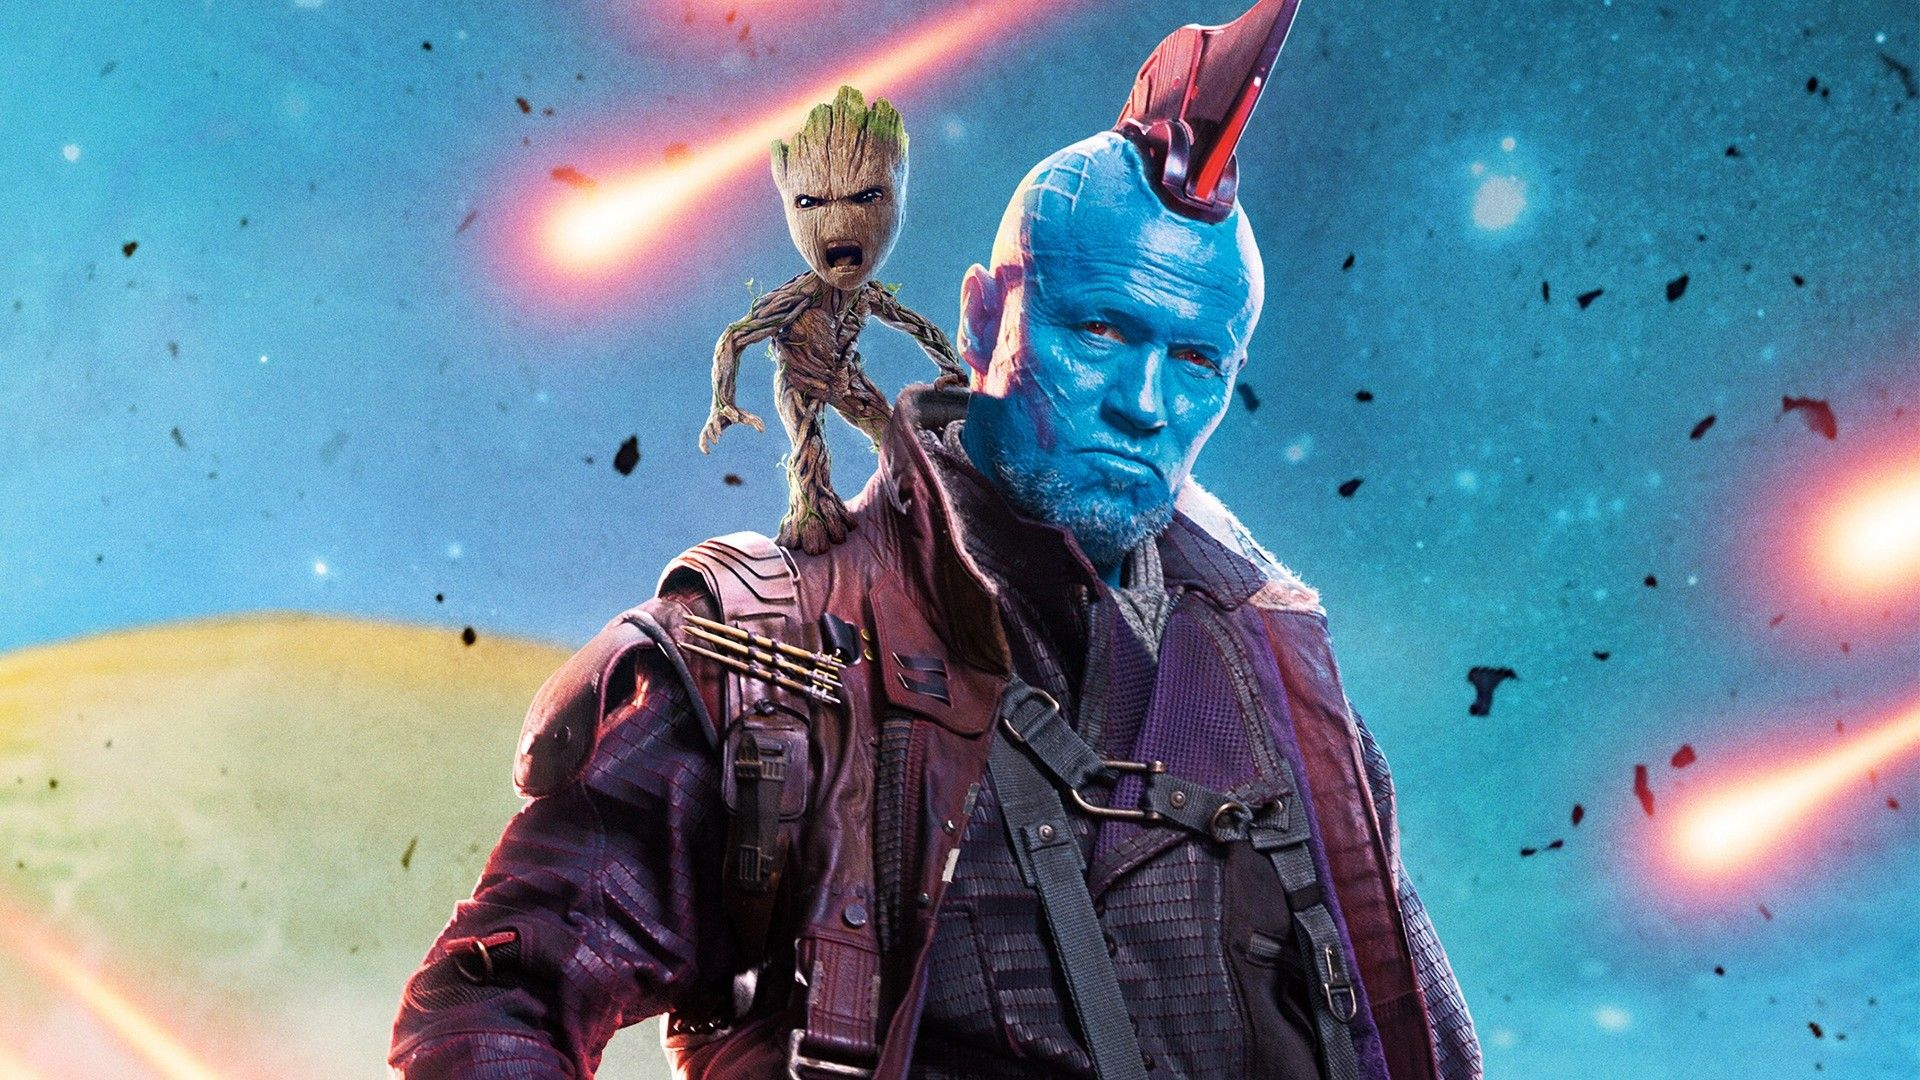 4k Guardians Of The Galaxy Wallpapers Top Free 4k Guardians Of